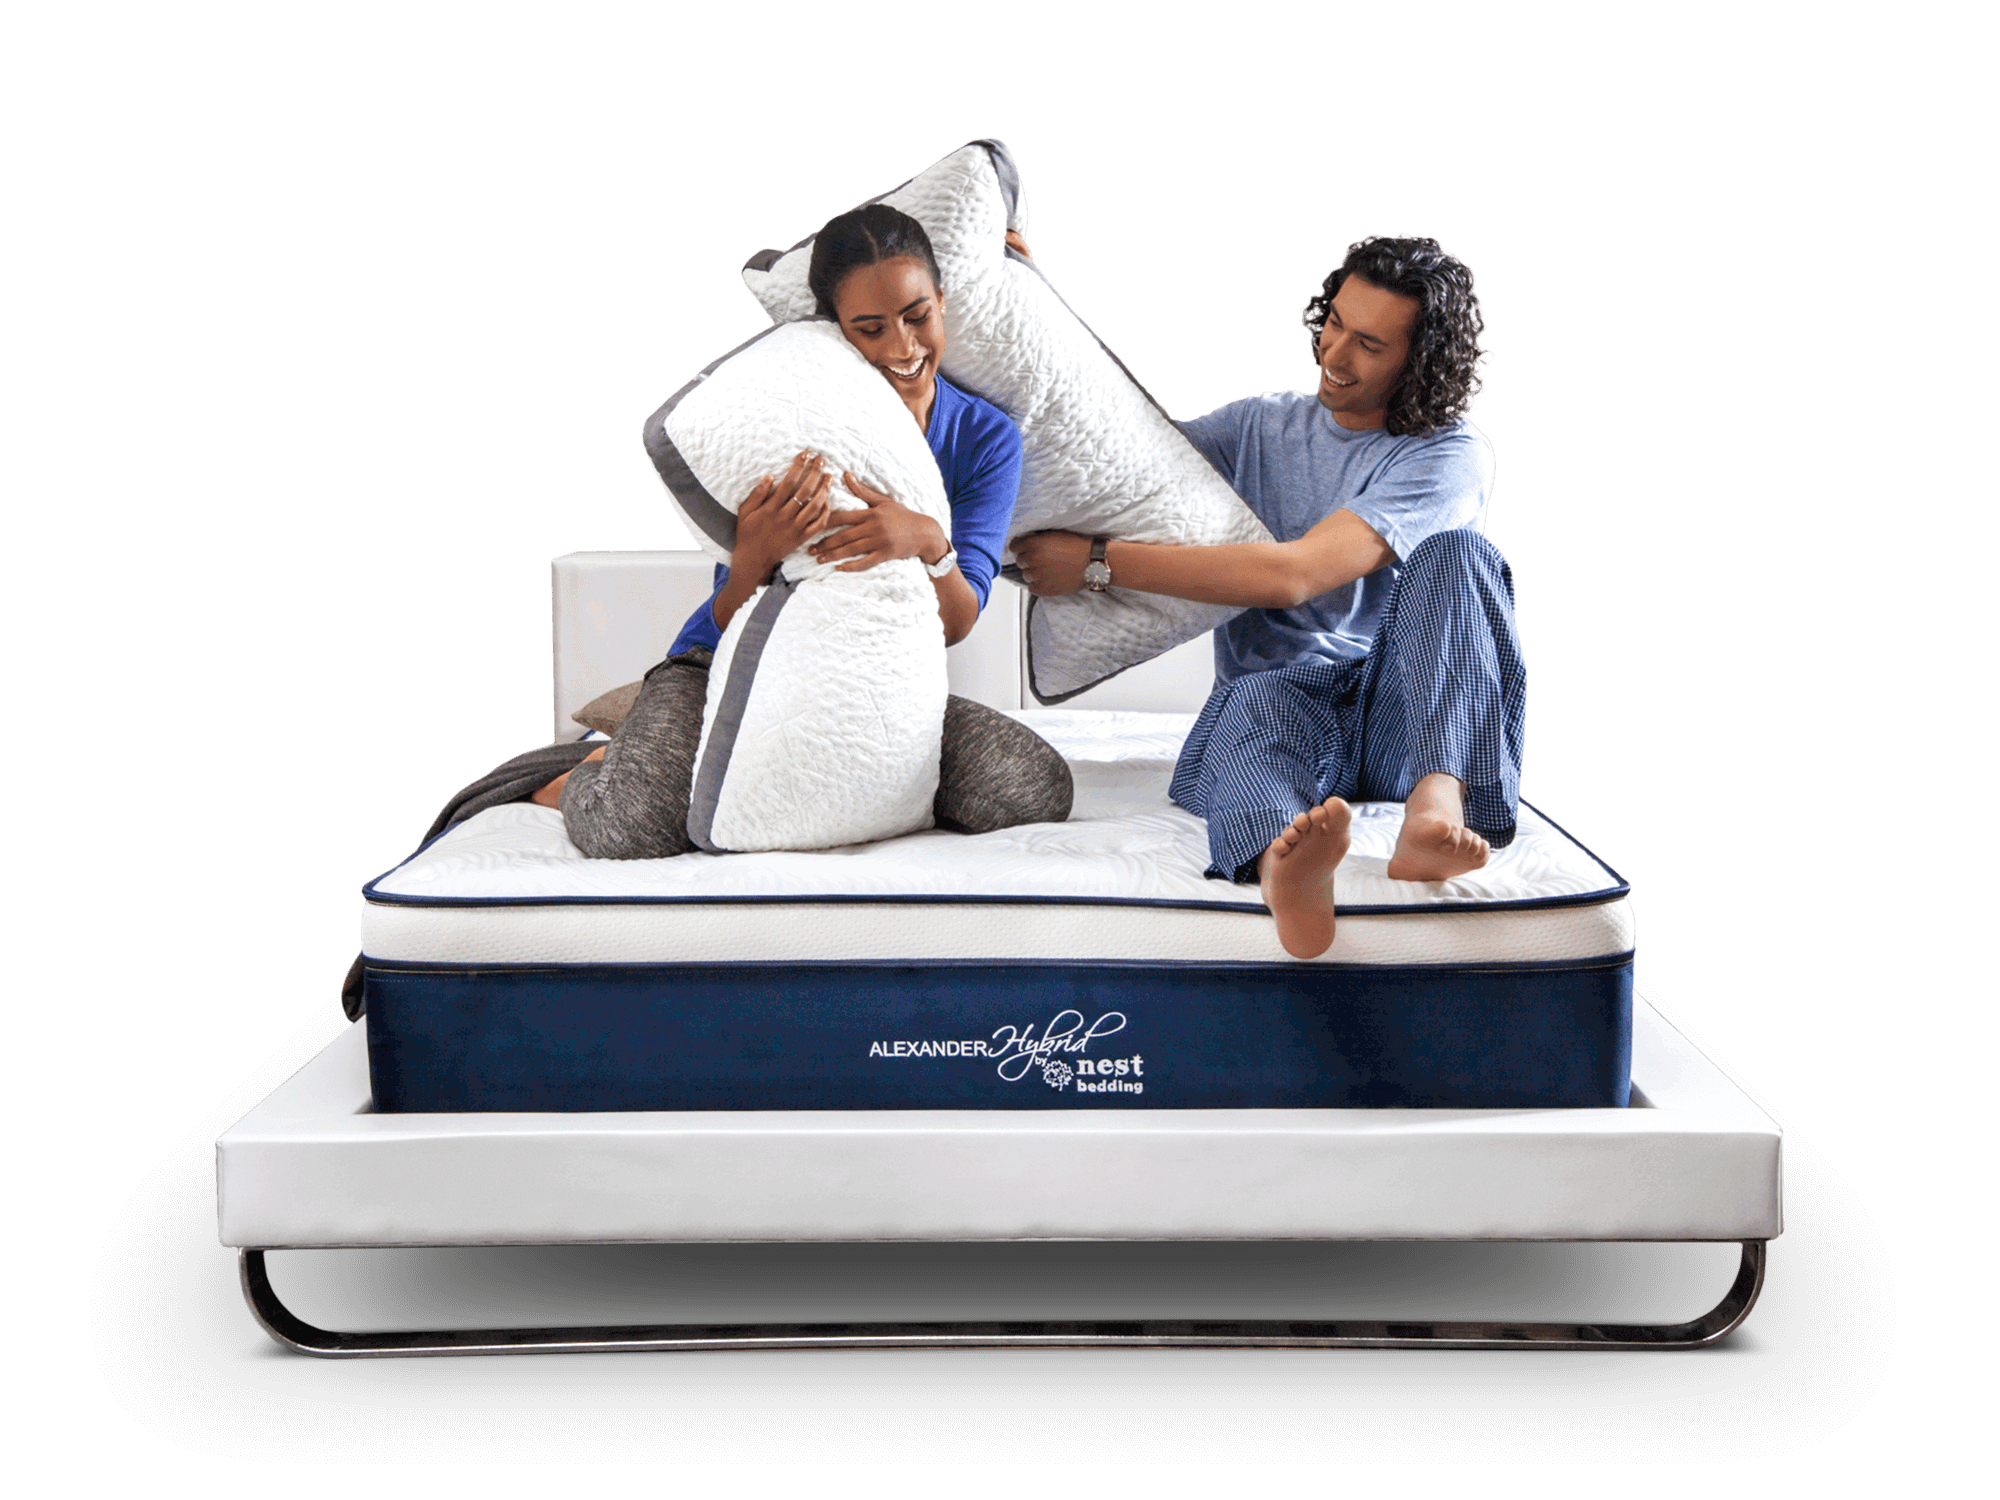 how does it feel when stand on nest bedding Alexander Signature Hybrid